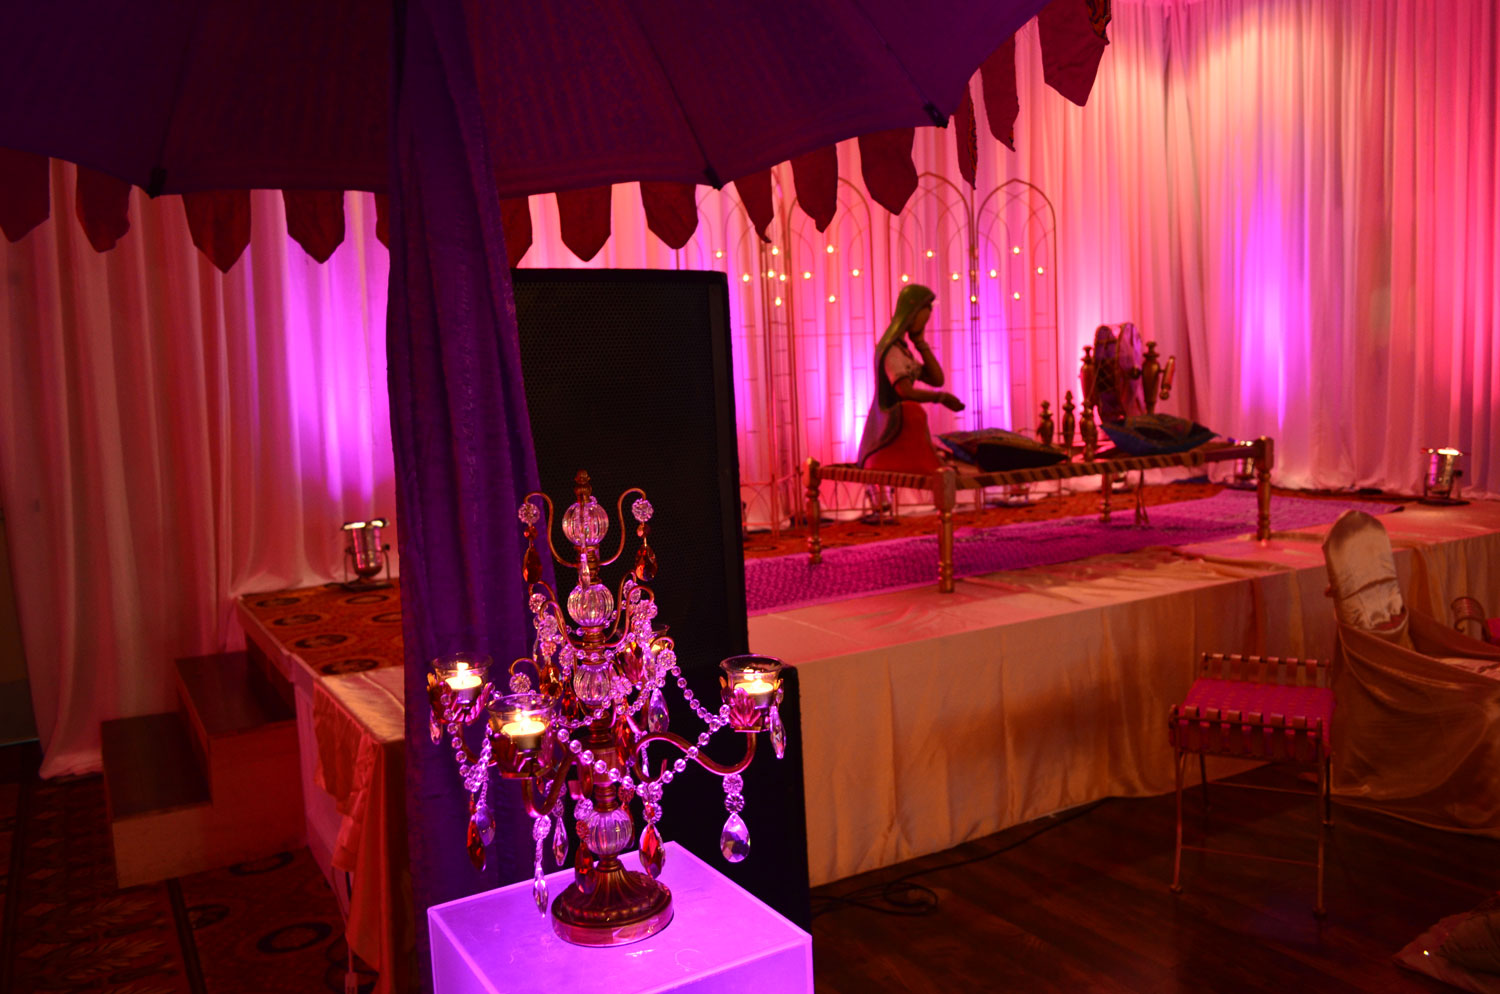 Punjabi theme decor - Maiyan / Ladies Party - draping - lighting - indian props